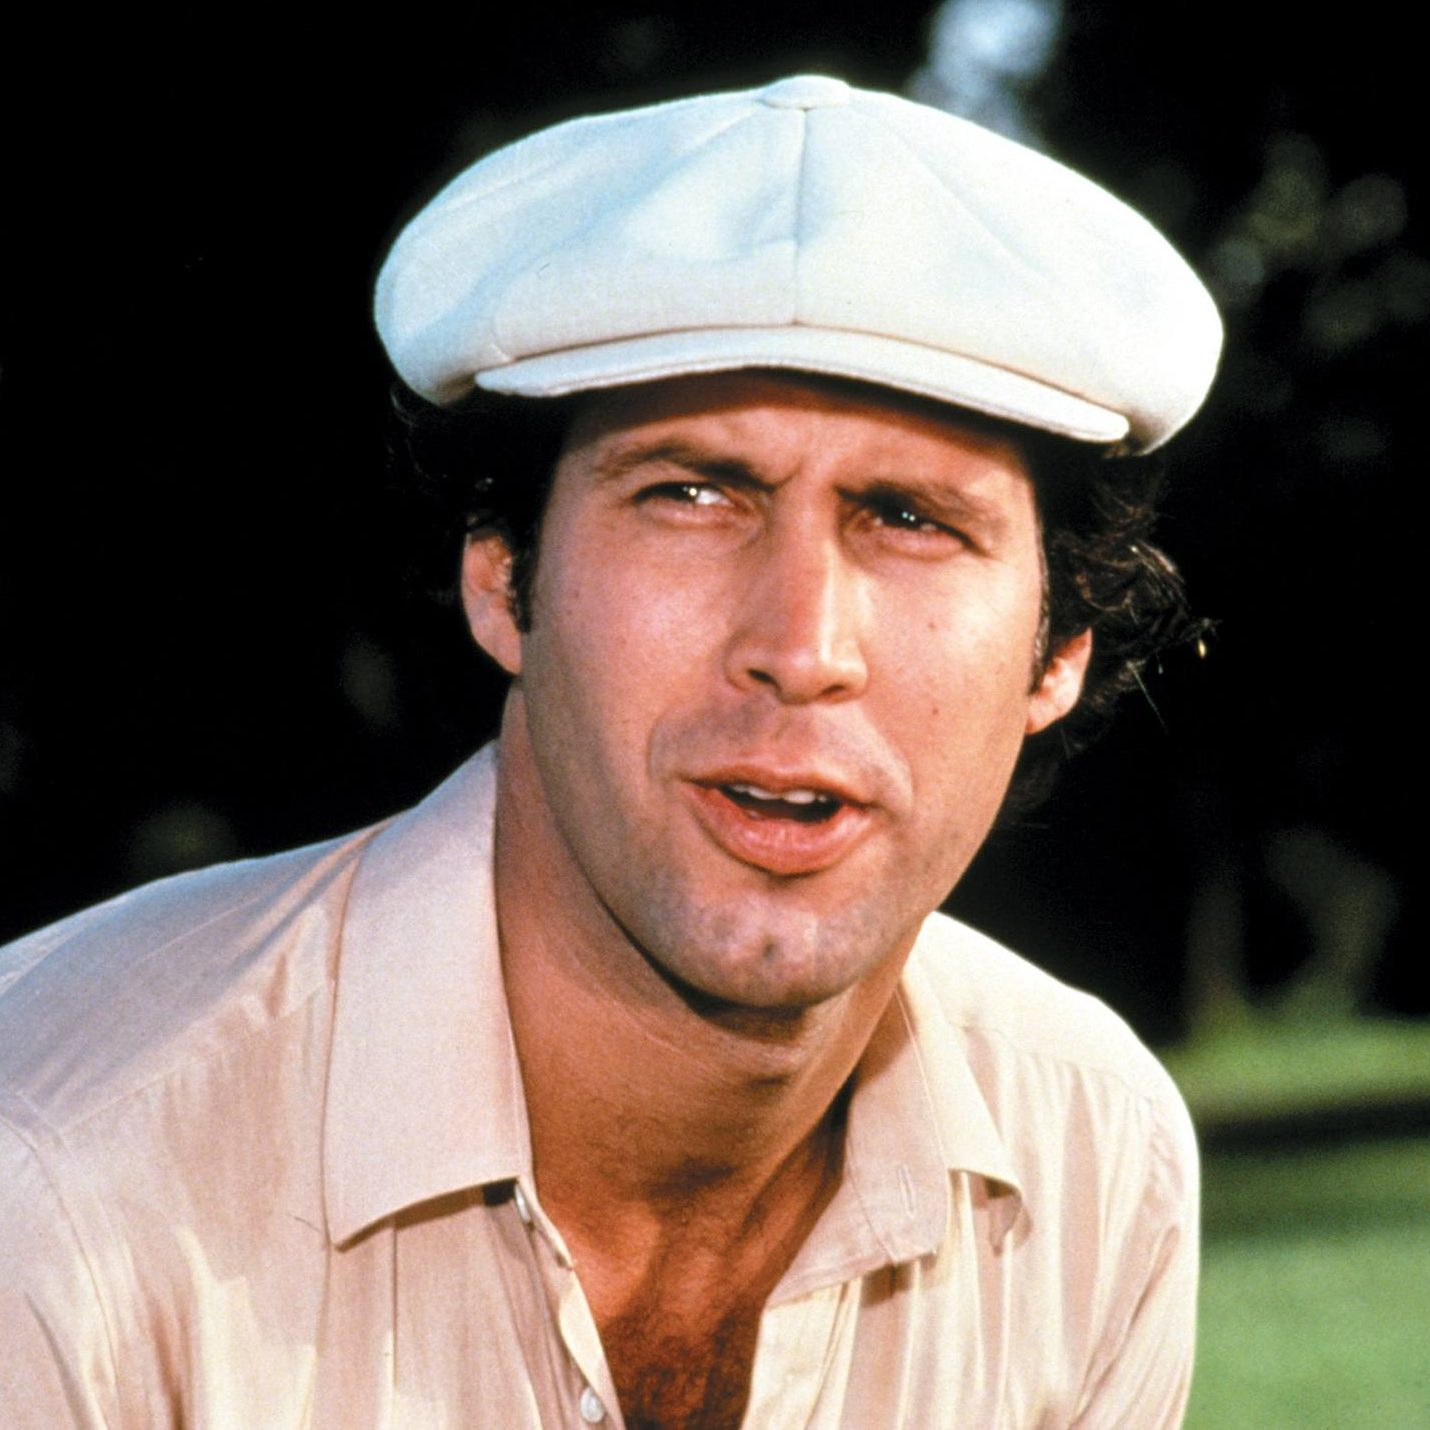 chevy chase caddyshack e1601389964880 Caddyshack: 20 Things You Never Knew About The Comedy Classic